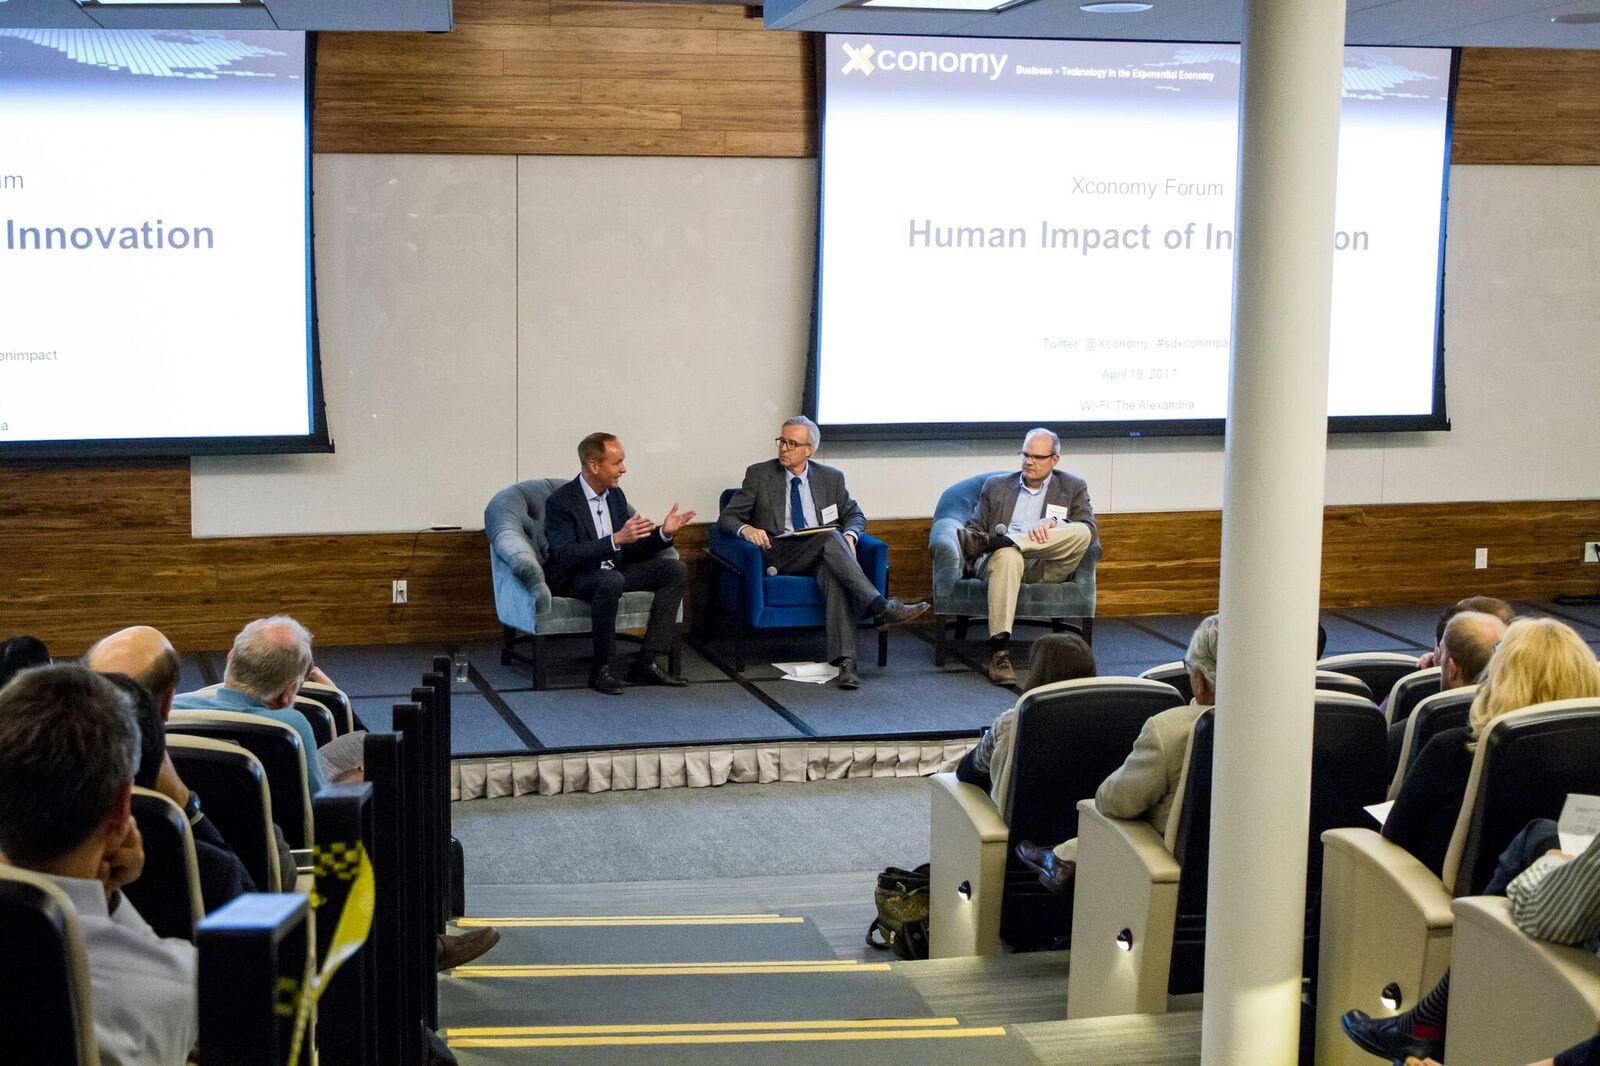 <strong>Xconomy Forum on the Human Impact of Innovation</strong>